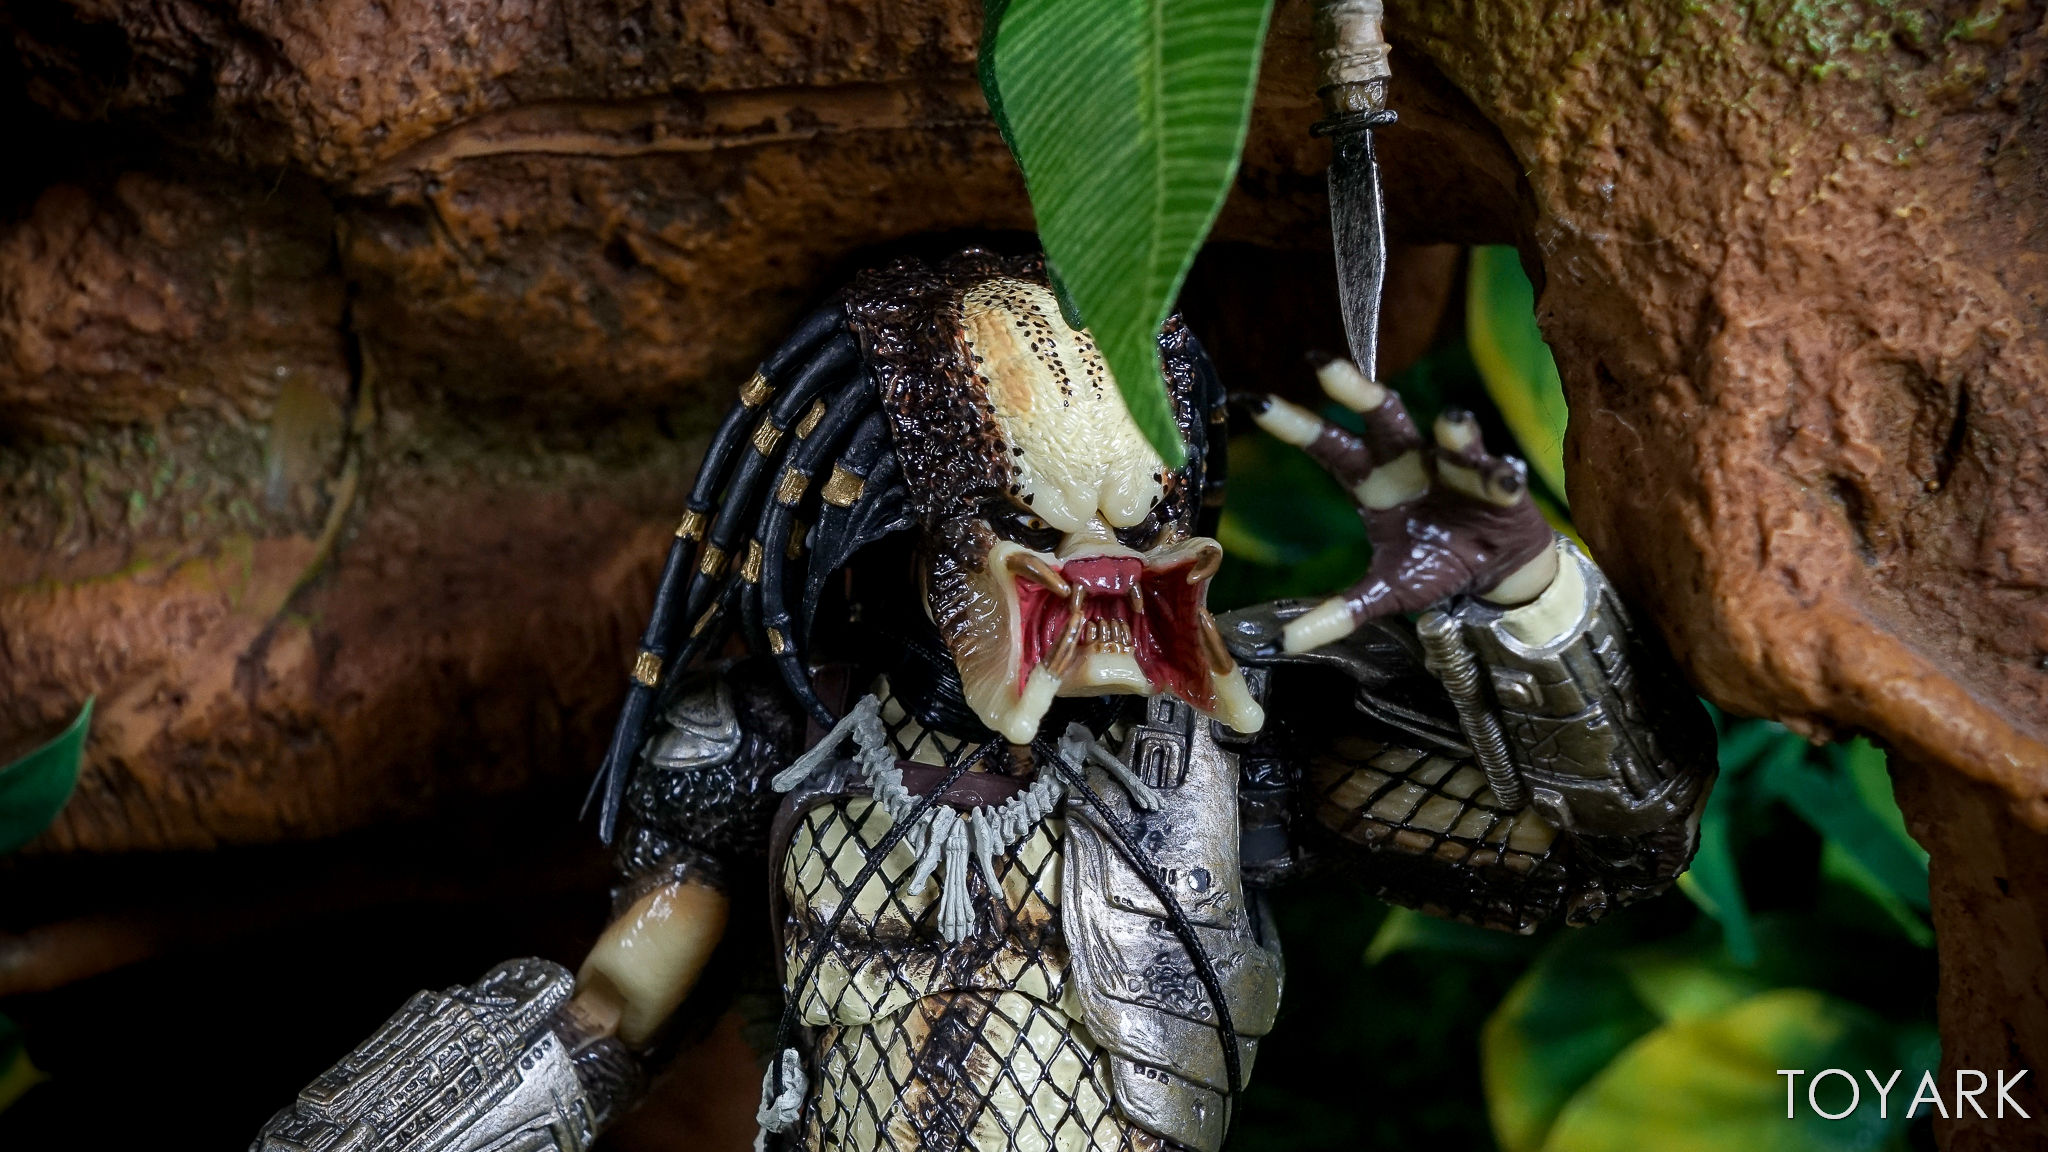 http://news.toyark.com/wp-content/uploads/sites/4/2017/06/Predator-30th-Anniversary-Set-126.jpg